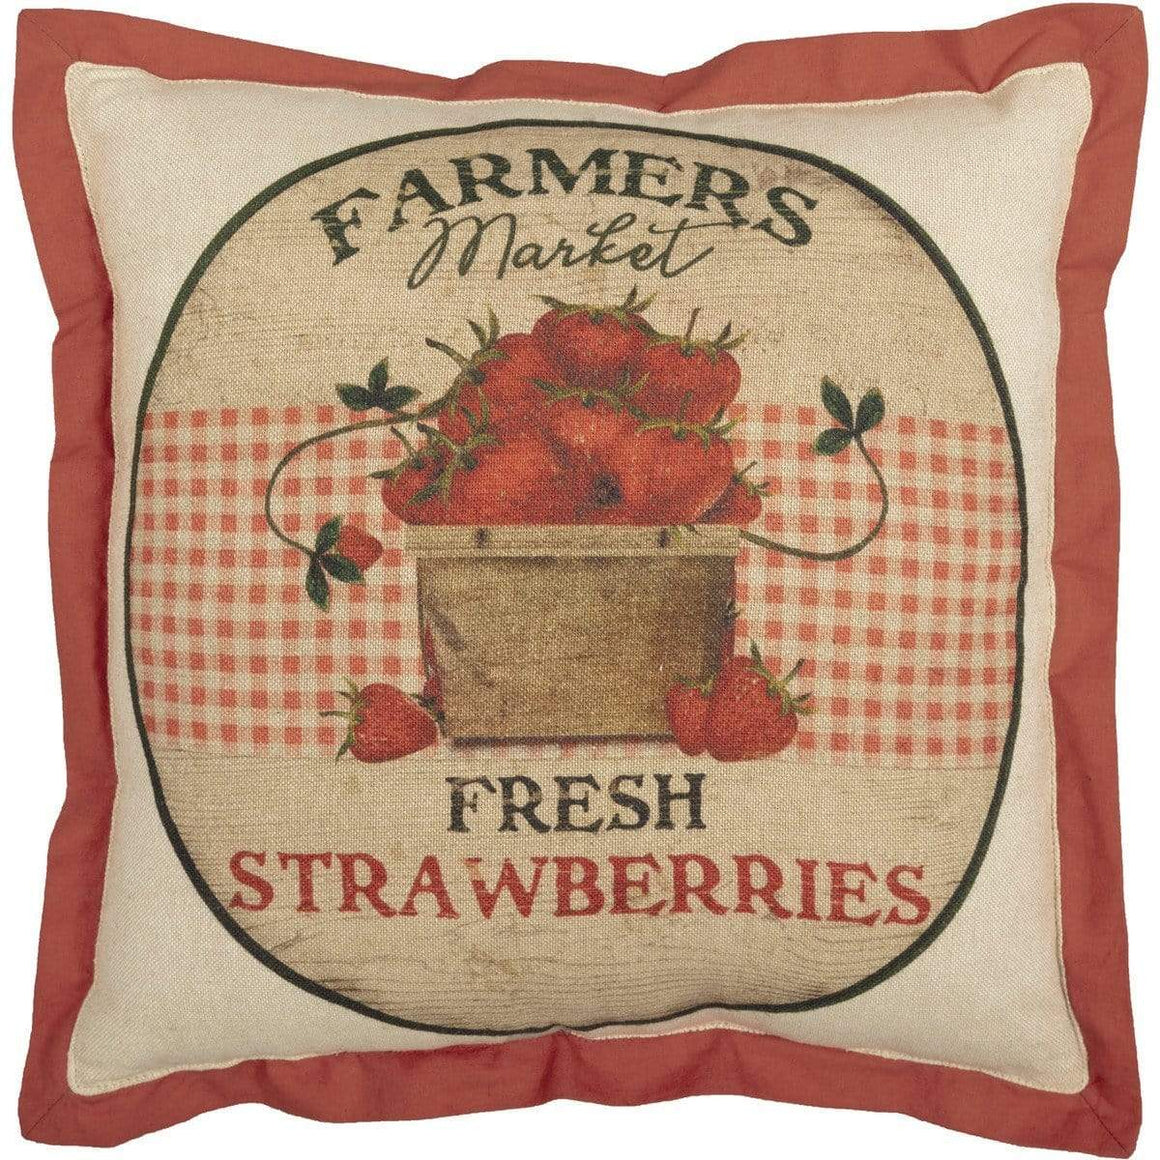 Farmer's Market Fresh Strawberries Pillow